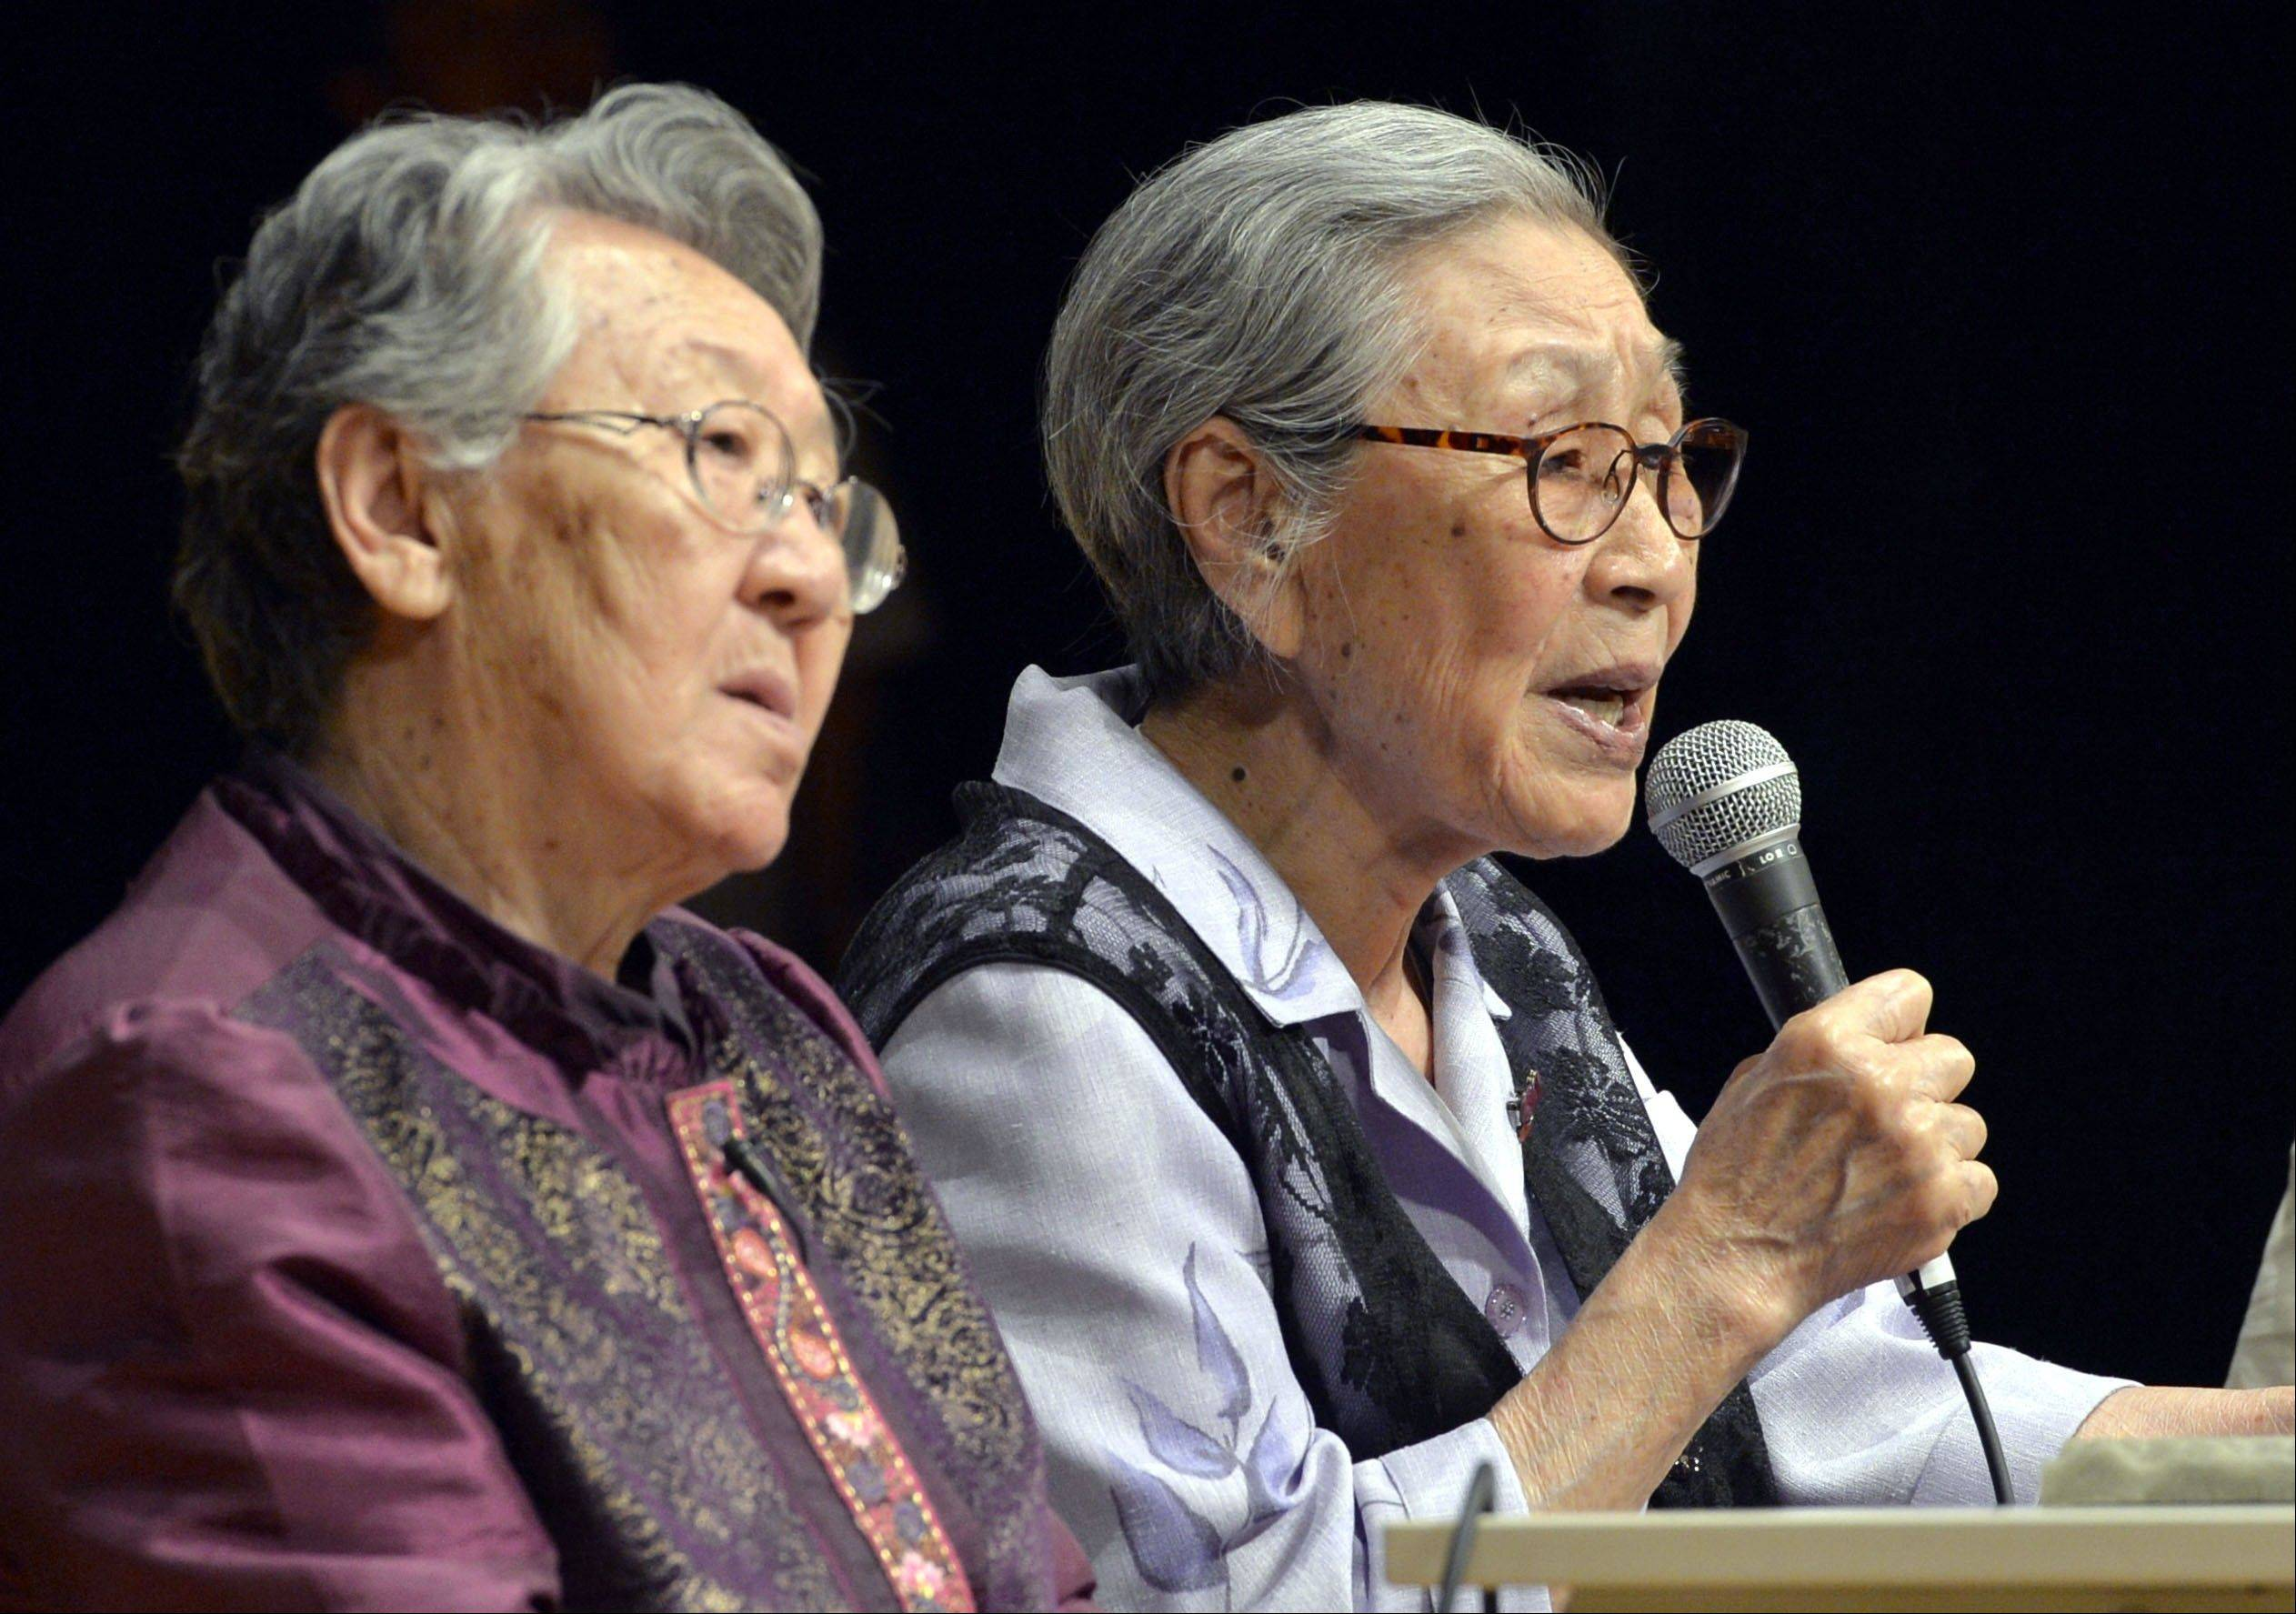 South Korean former sex slaves Kim Bok-dong, right, and Kil Won-ok, left, attend a meeting in Osaka, western Japan. More than 70 years ago, at age 14, Kim Bok-dong was ordered to work by Korea�s Japanese occupiers. She was told she was going to a military uniform factory, but ended up at a Japanese-military-run brothel in southern China.